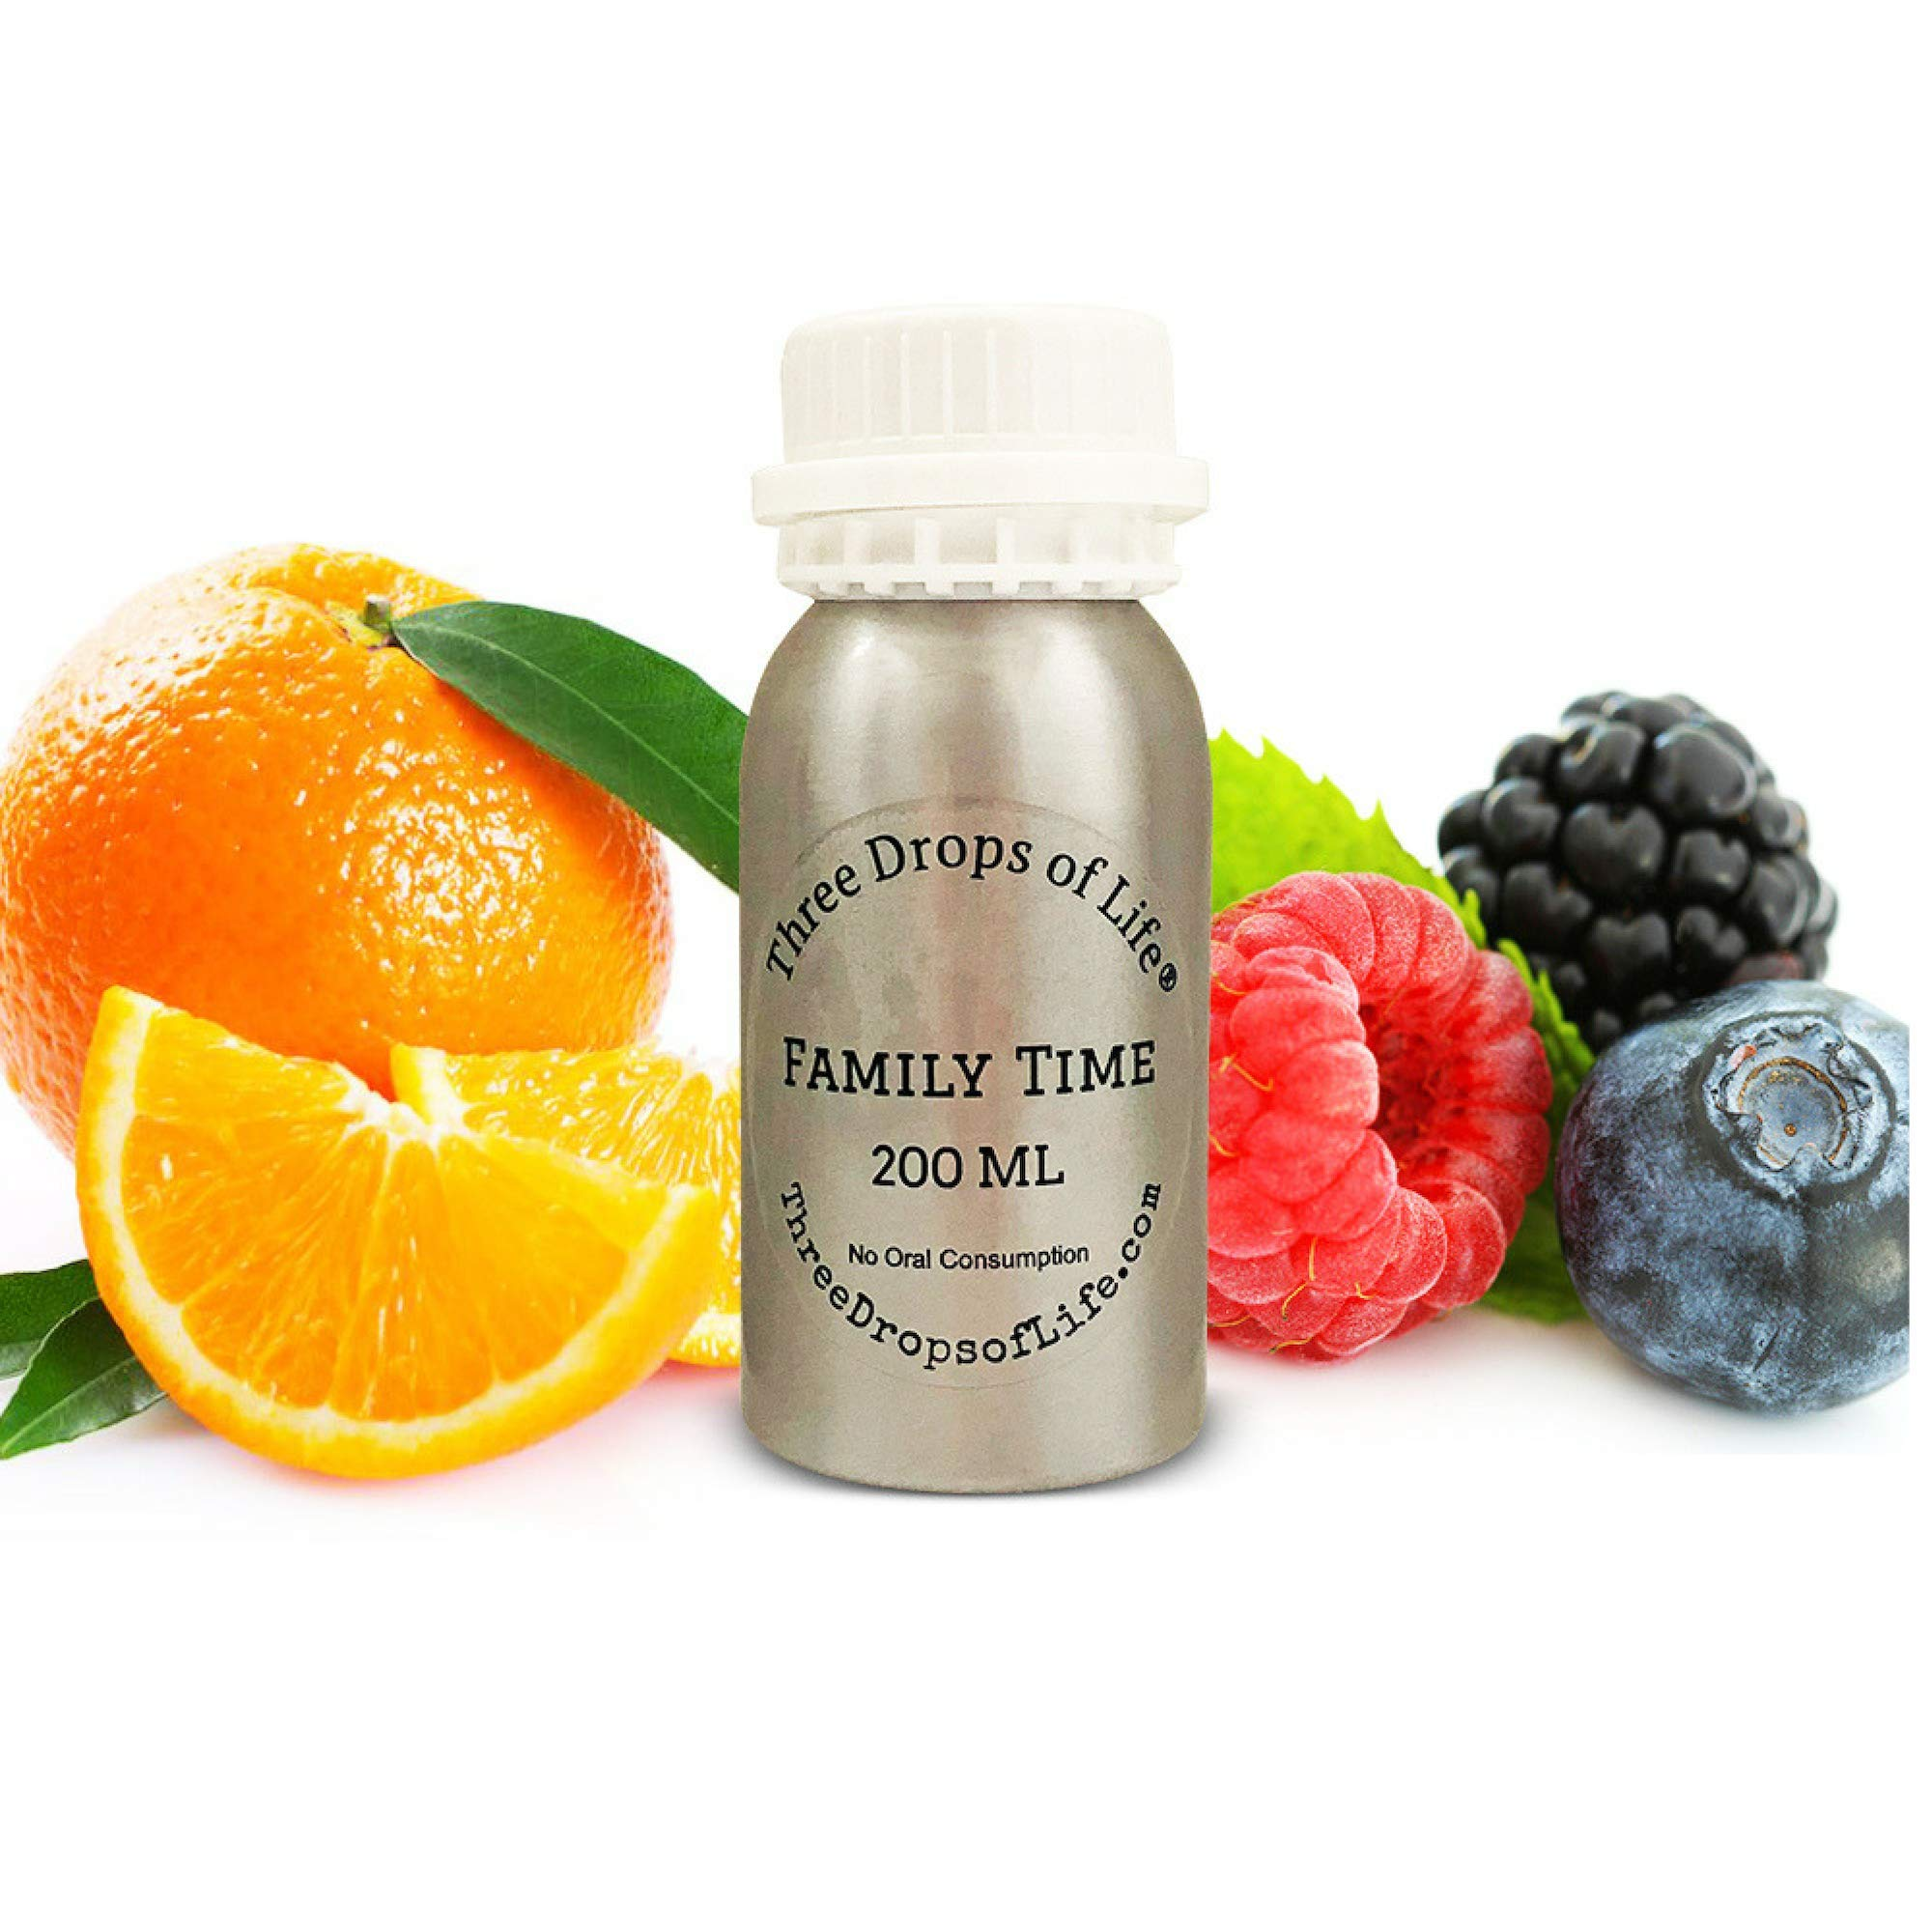 Aromatherapy Scent for Special No Water Diffusers, Luxury Blend of Fragrances for The Home, Office or Lobby (Family Time, 200ML)